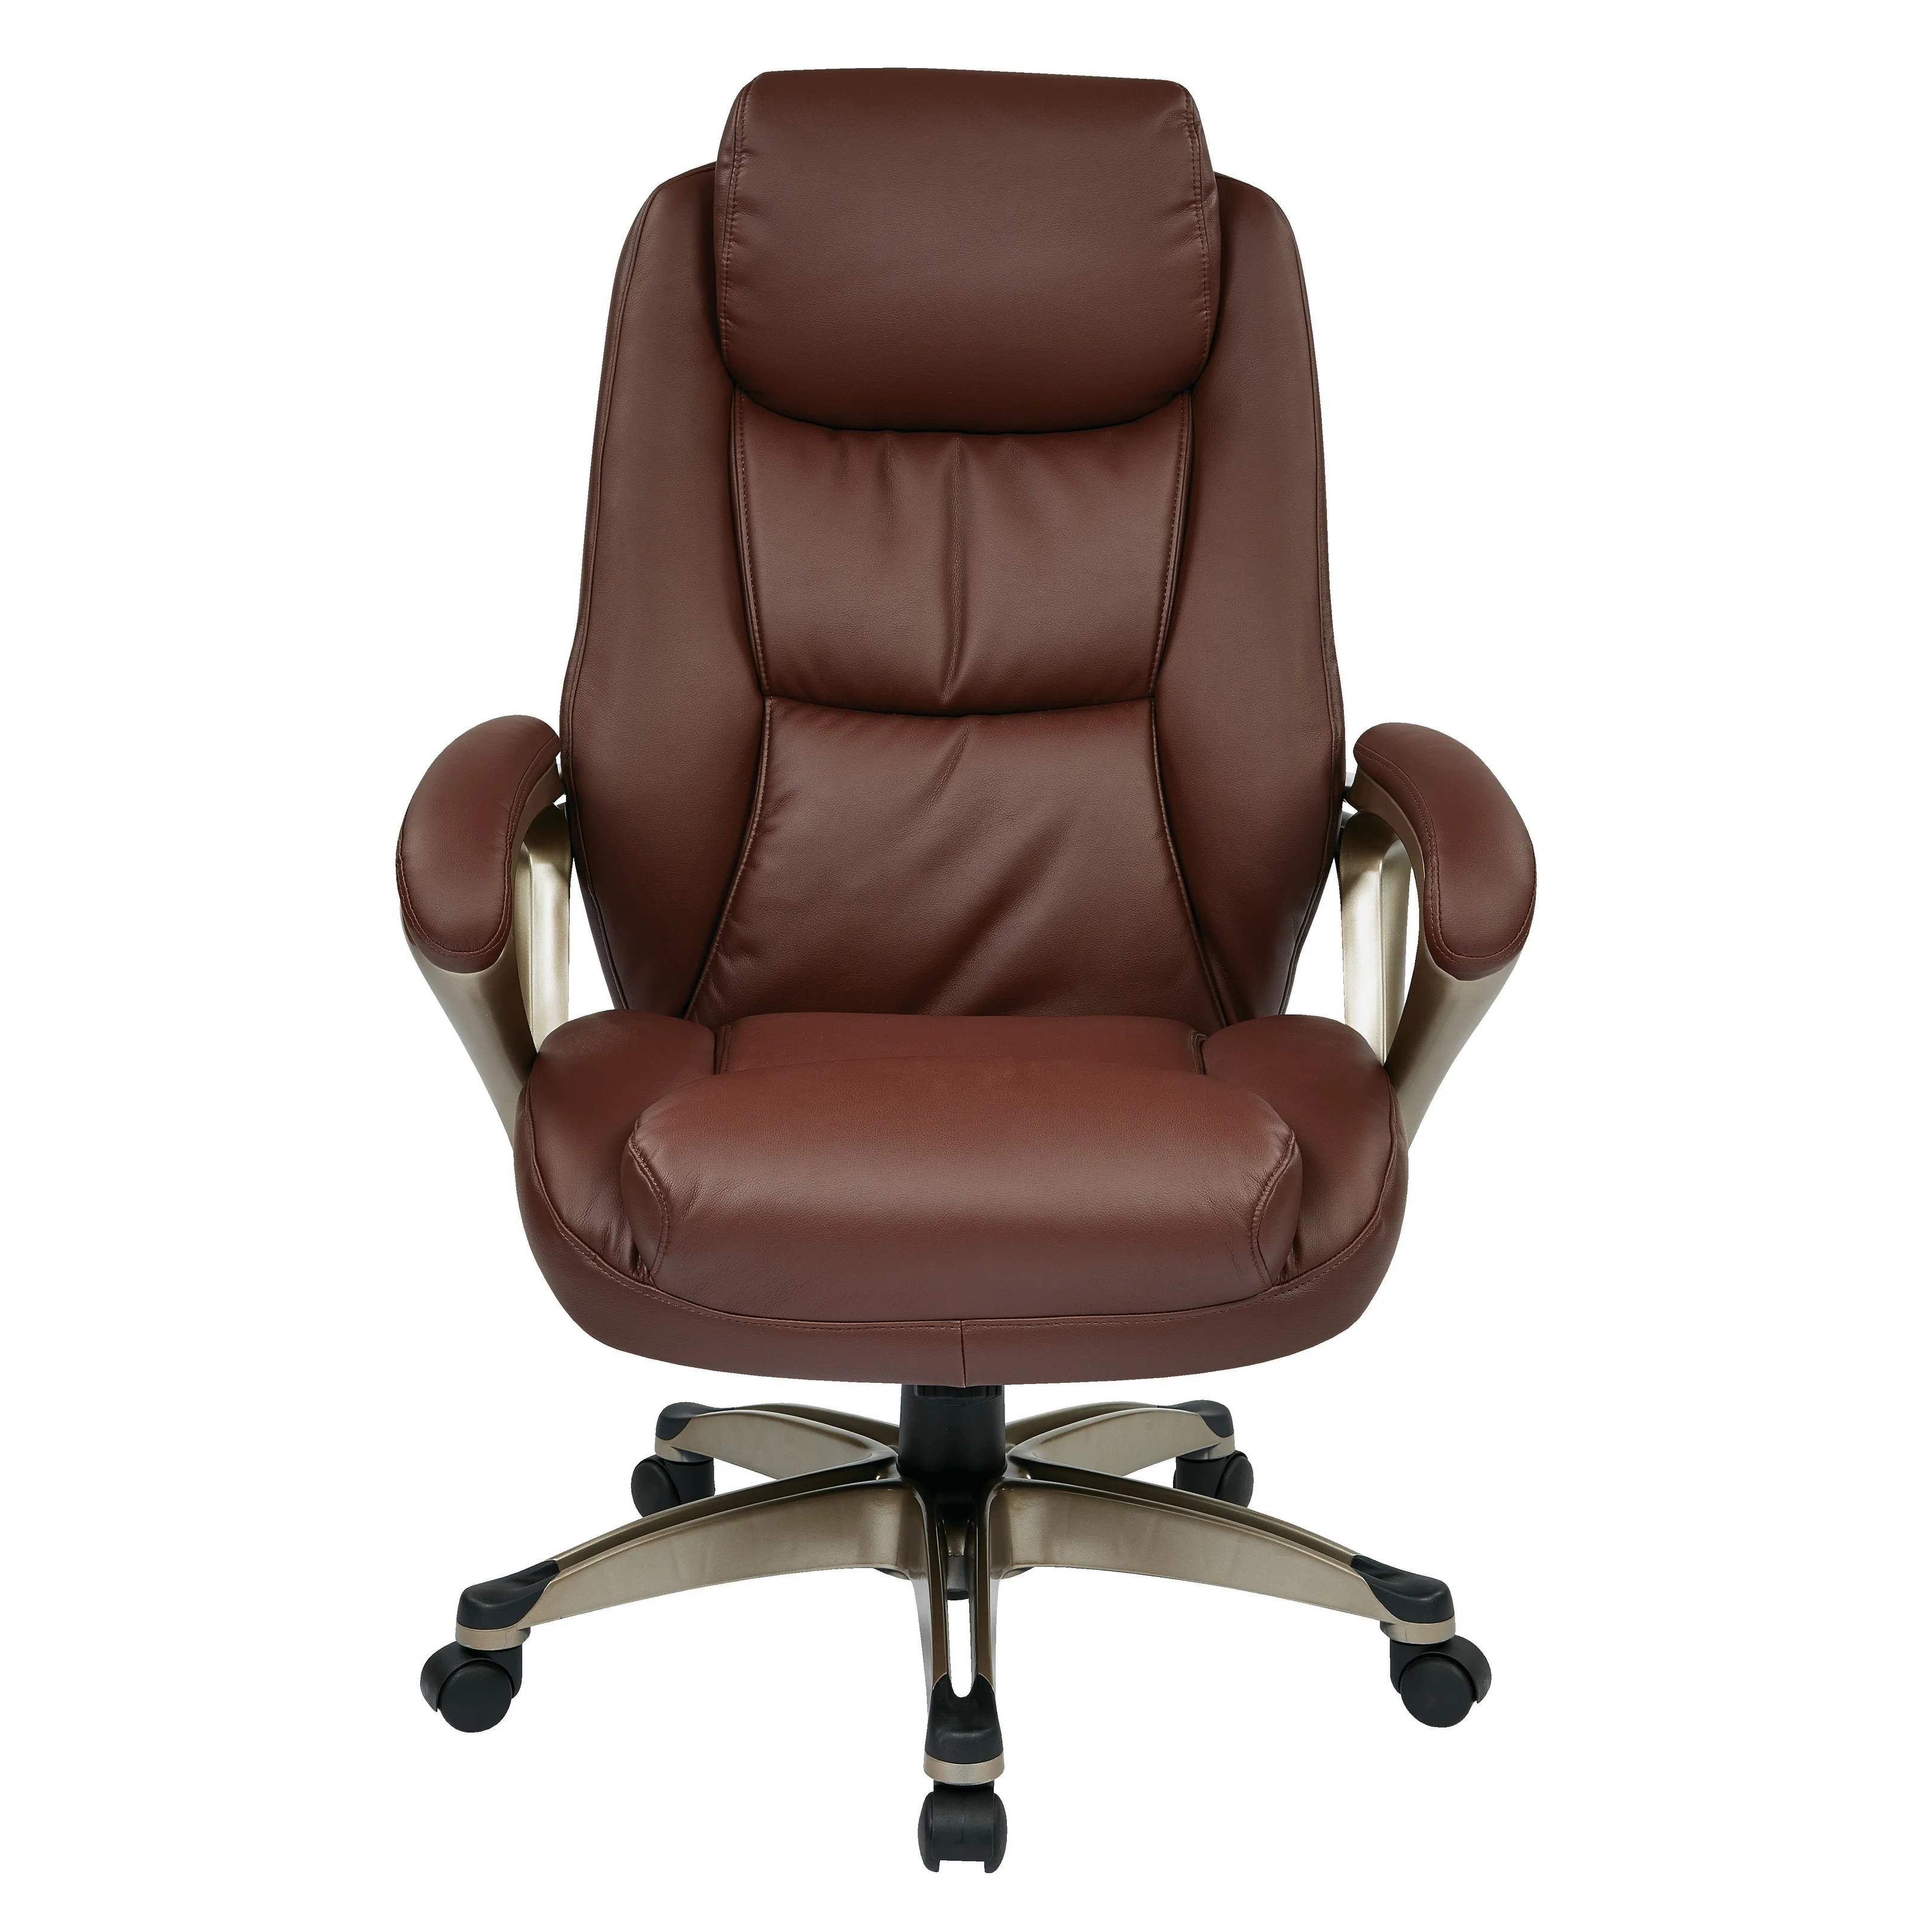 Spring Chair Office Star Executive Bonded Leather Chair With Coil Spring Seat